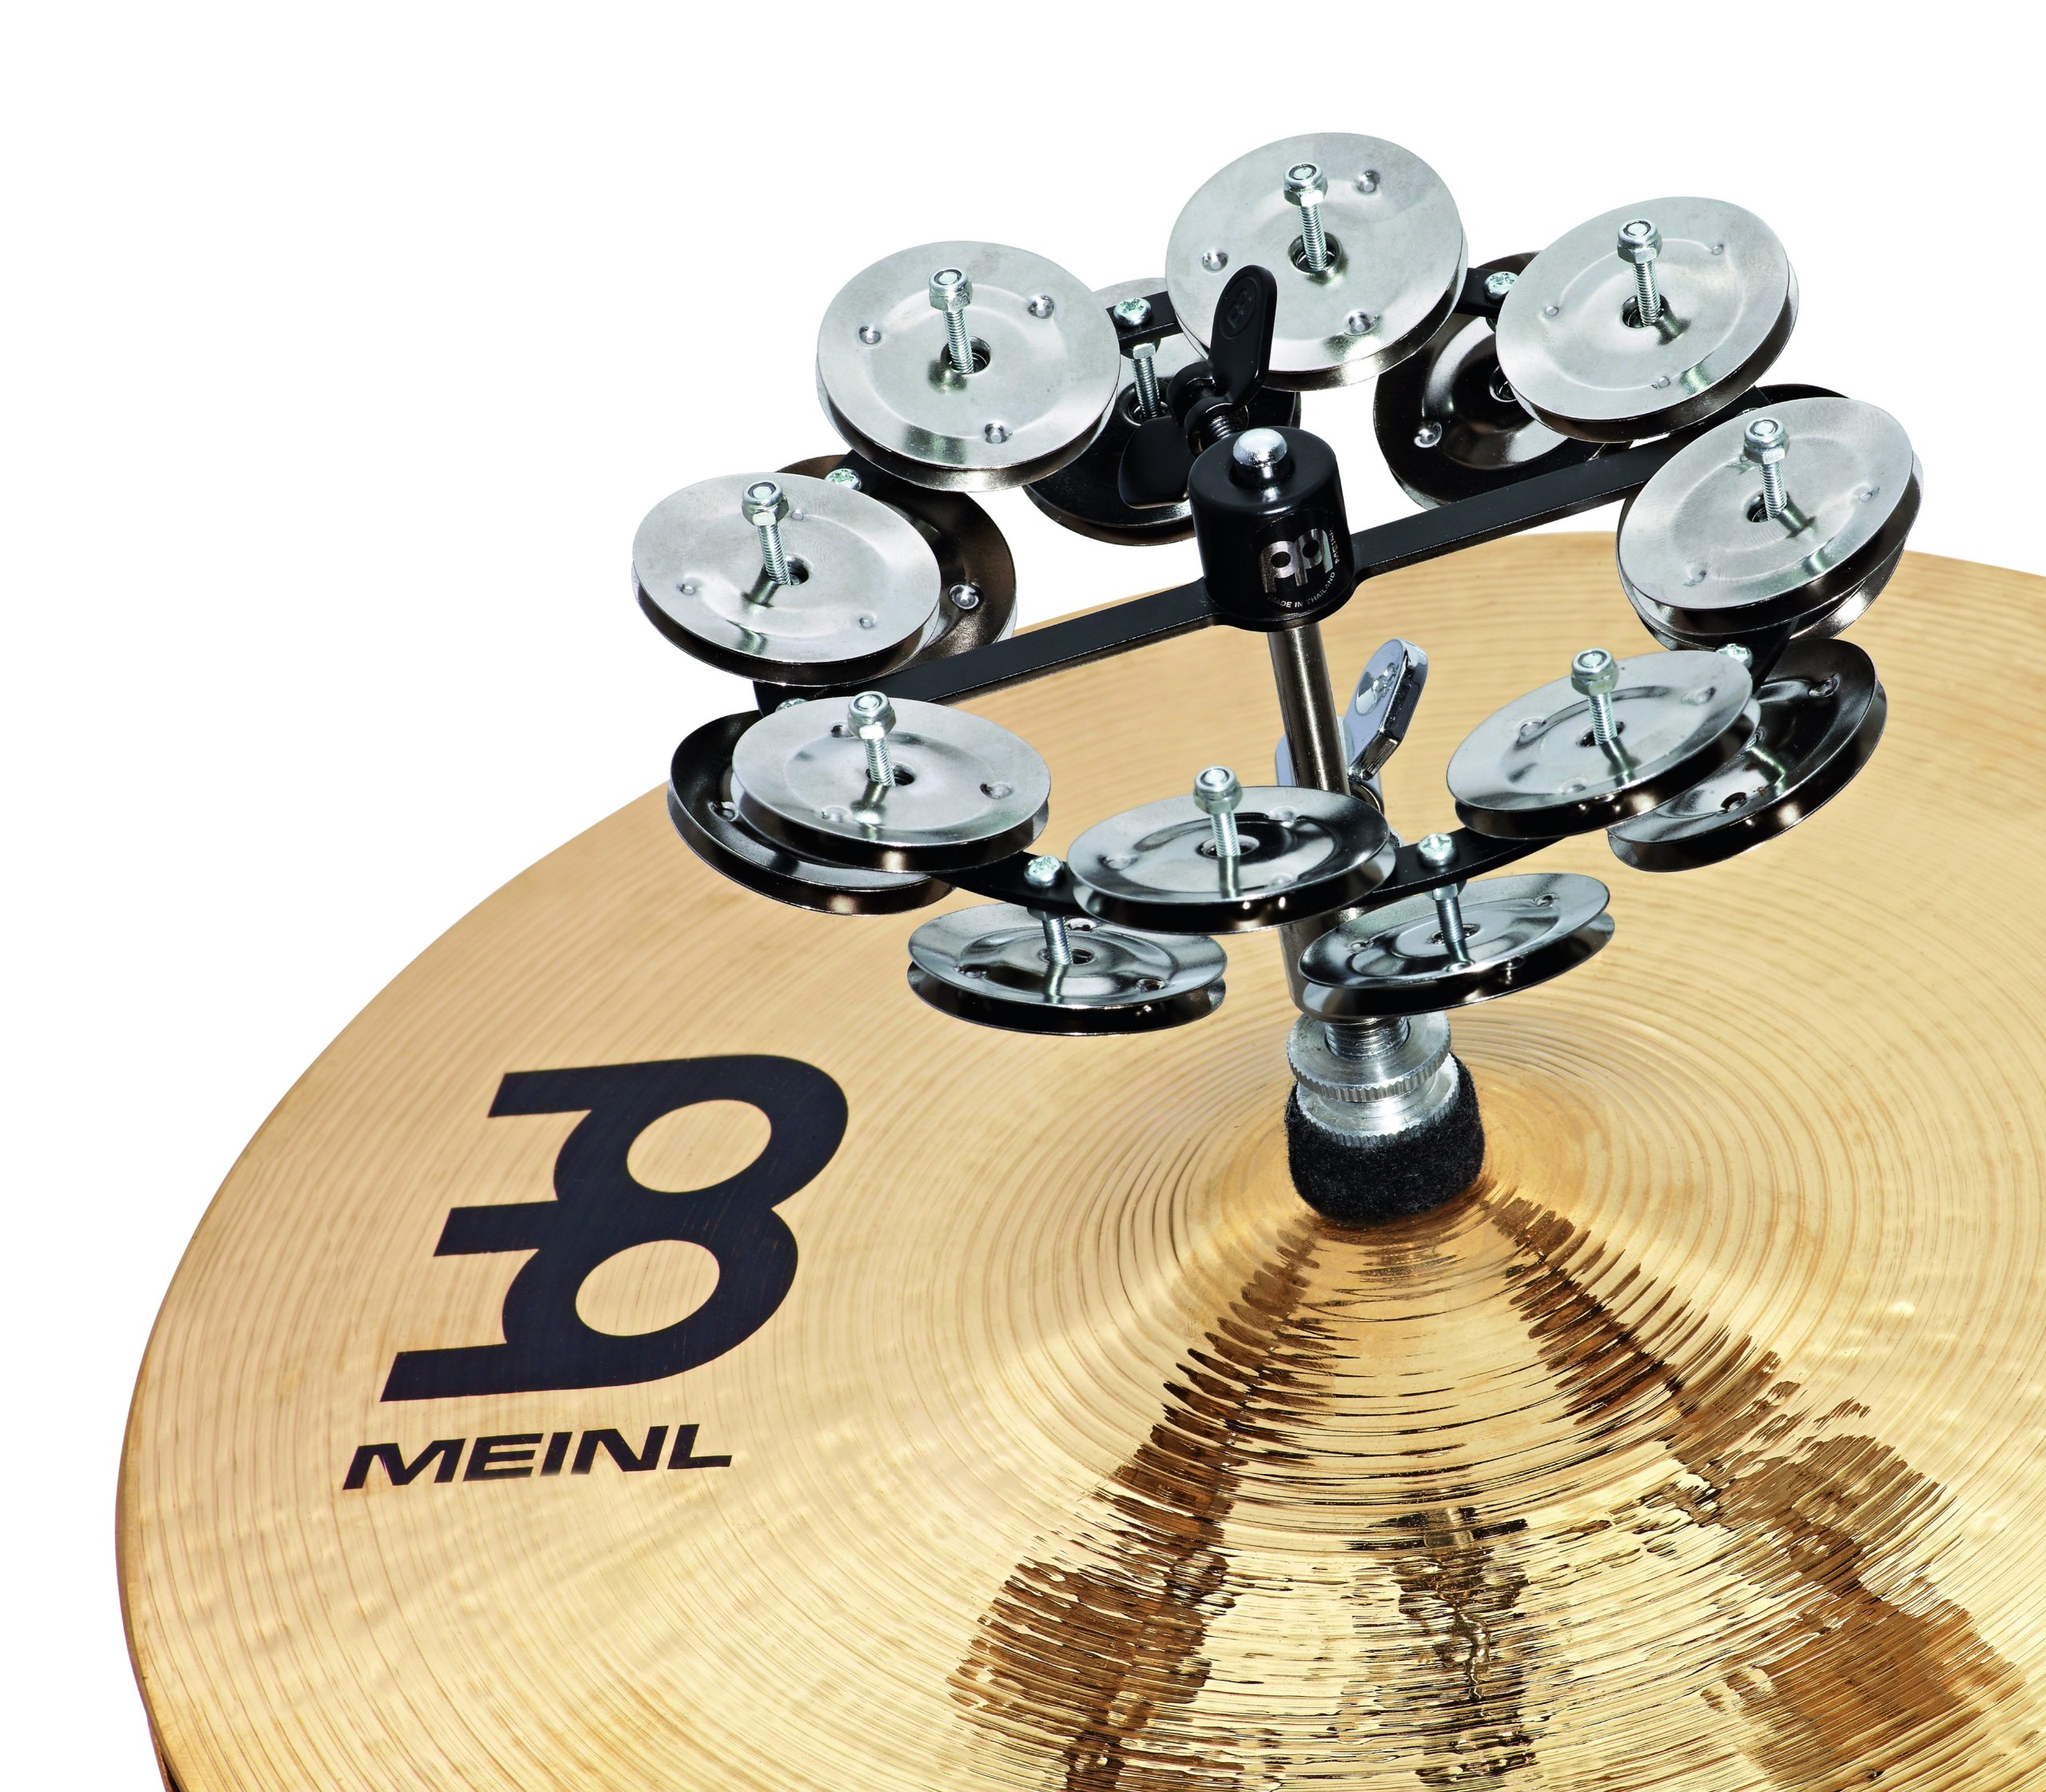 Meinl Percussion HTHH2BK Headliner Series Hi-Hat Tambourine With Double Row Steel Jingles 5-Inch - Black by Meinl Percussion (Image #2)